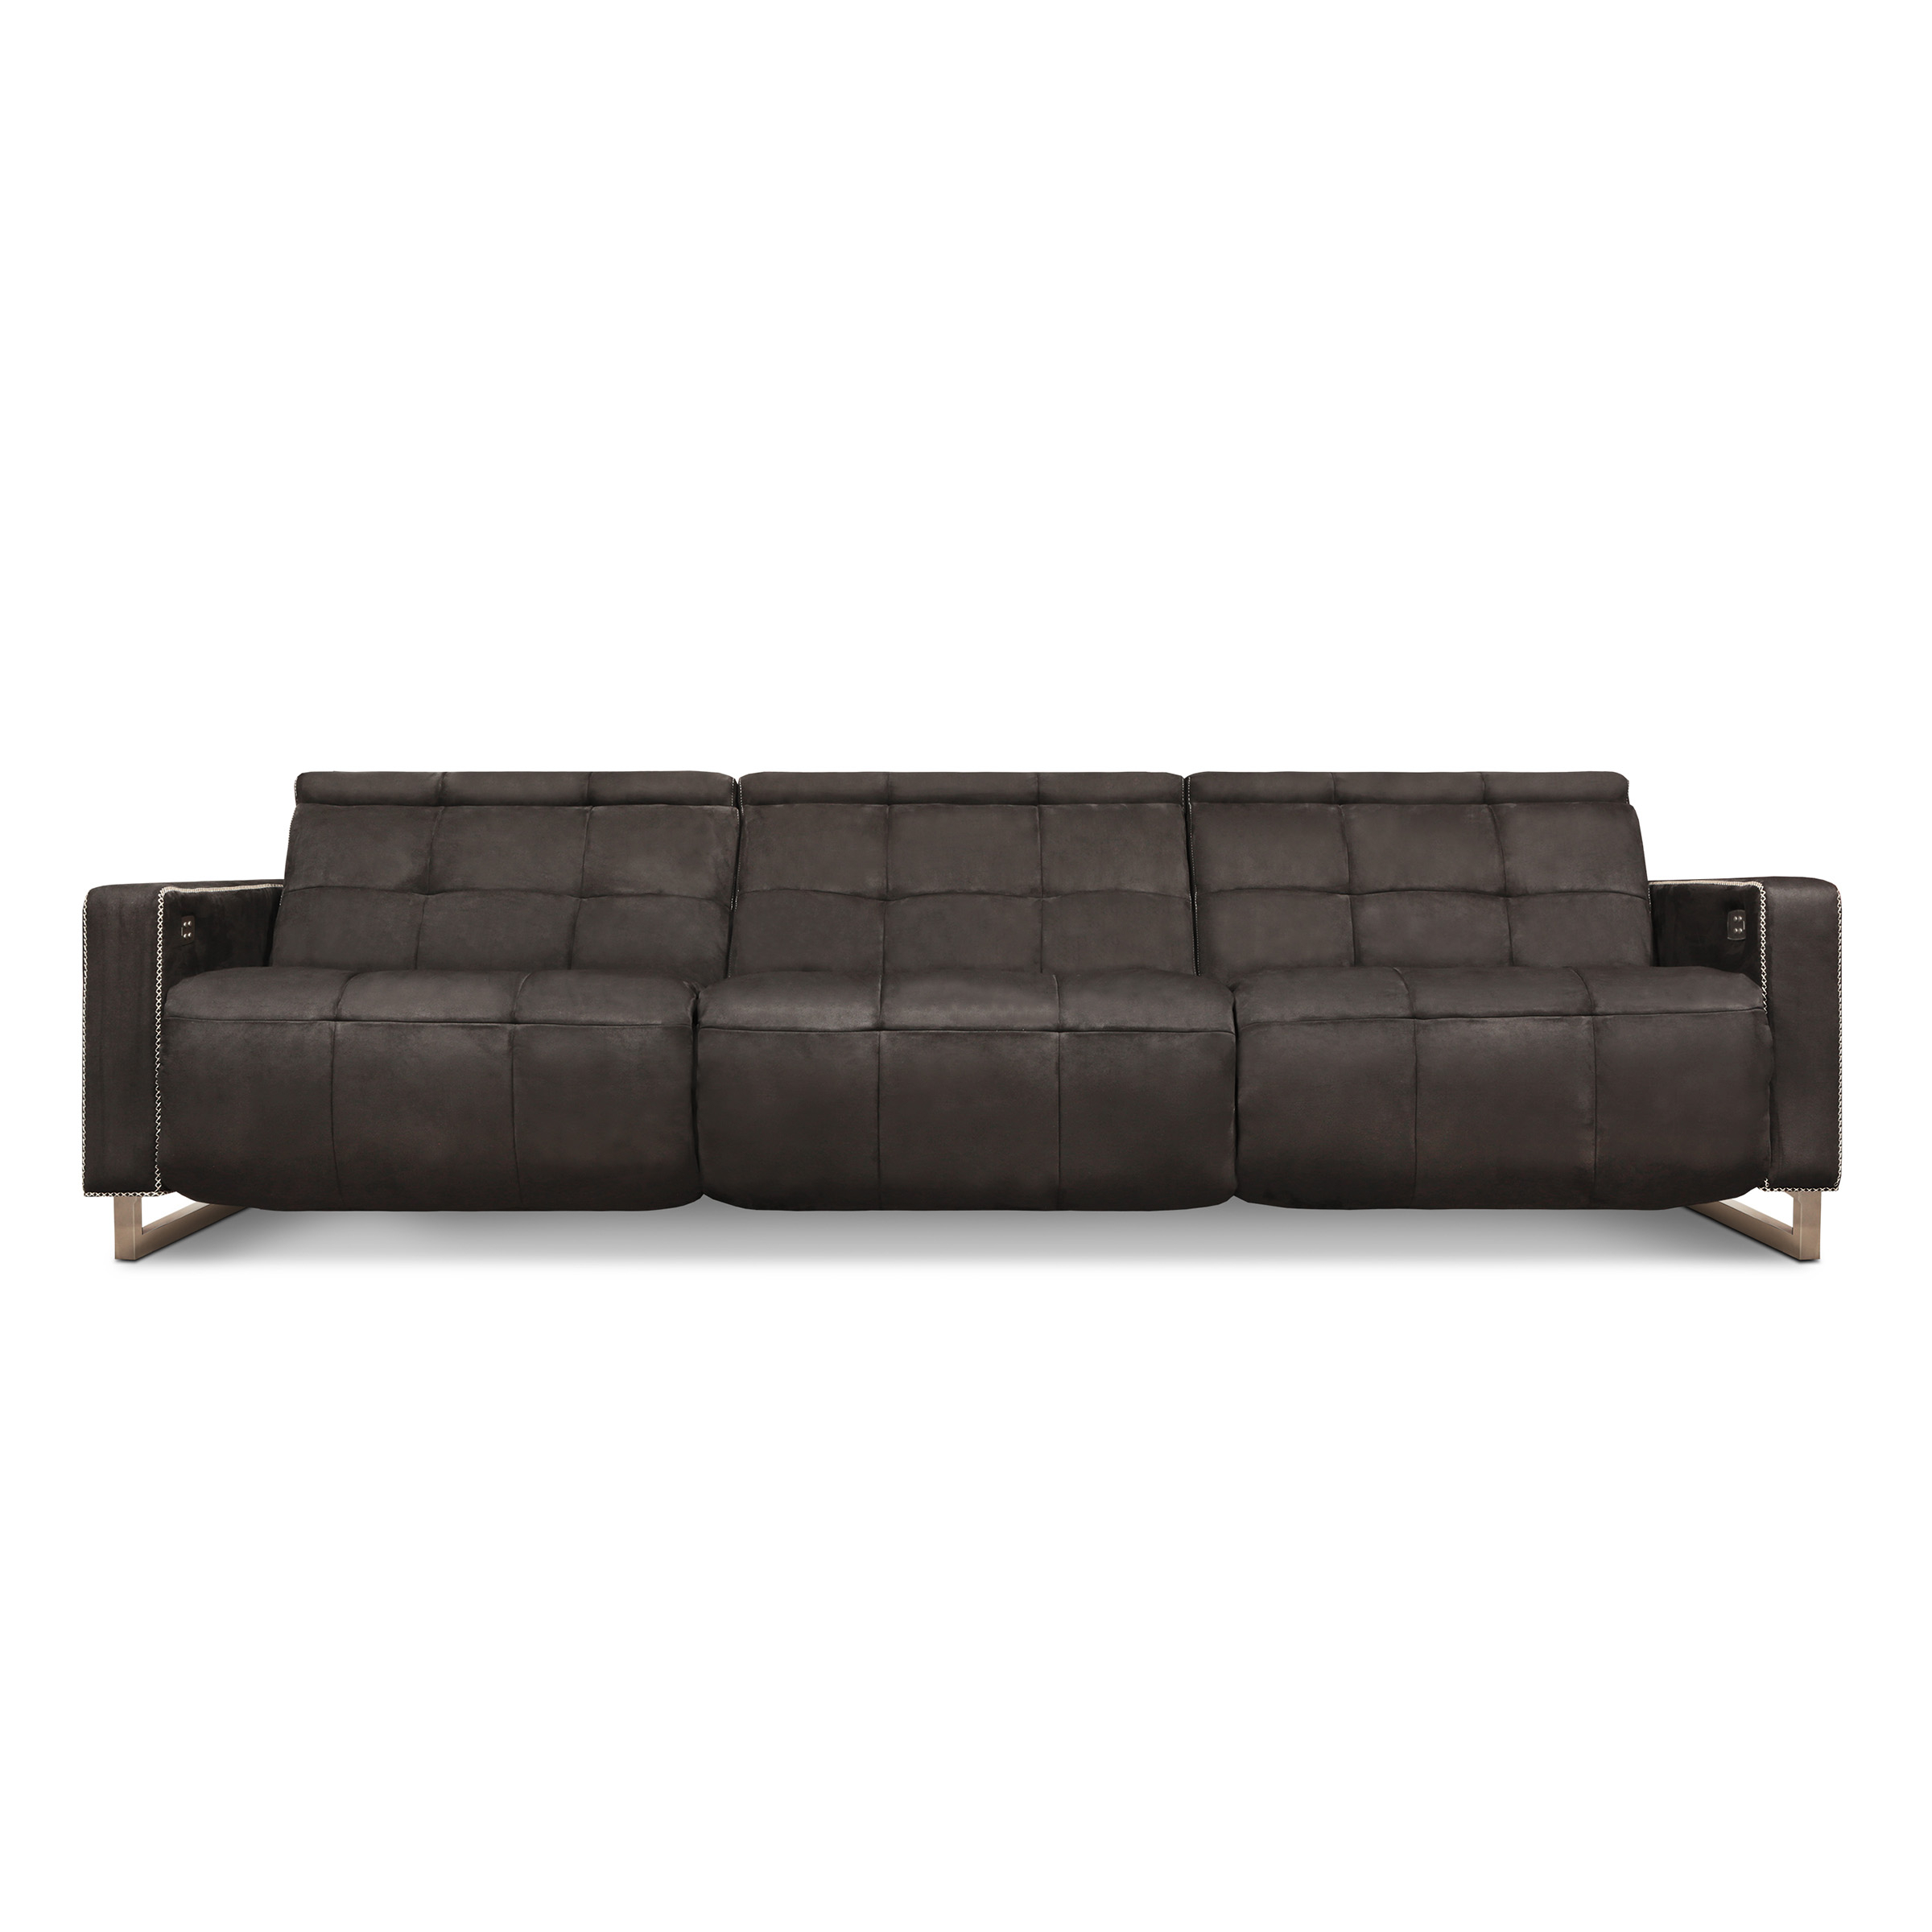 Casino Royale Motion – Eleanor Rigby Home Regarding Caressa Leather Dark Grey Sofa Chairs (Image 15 of 25)